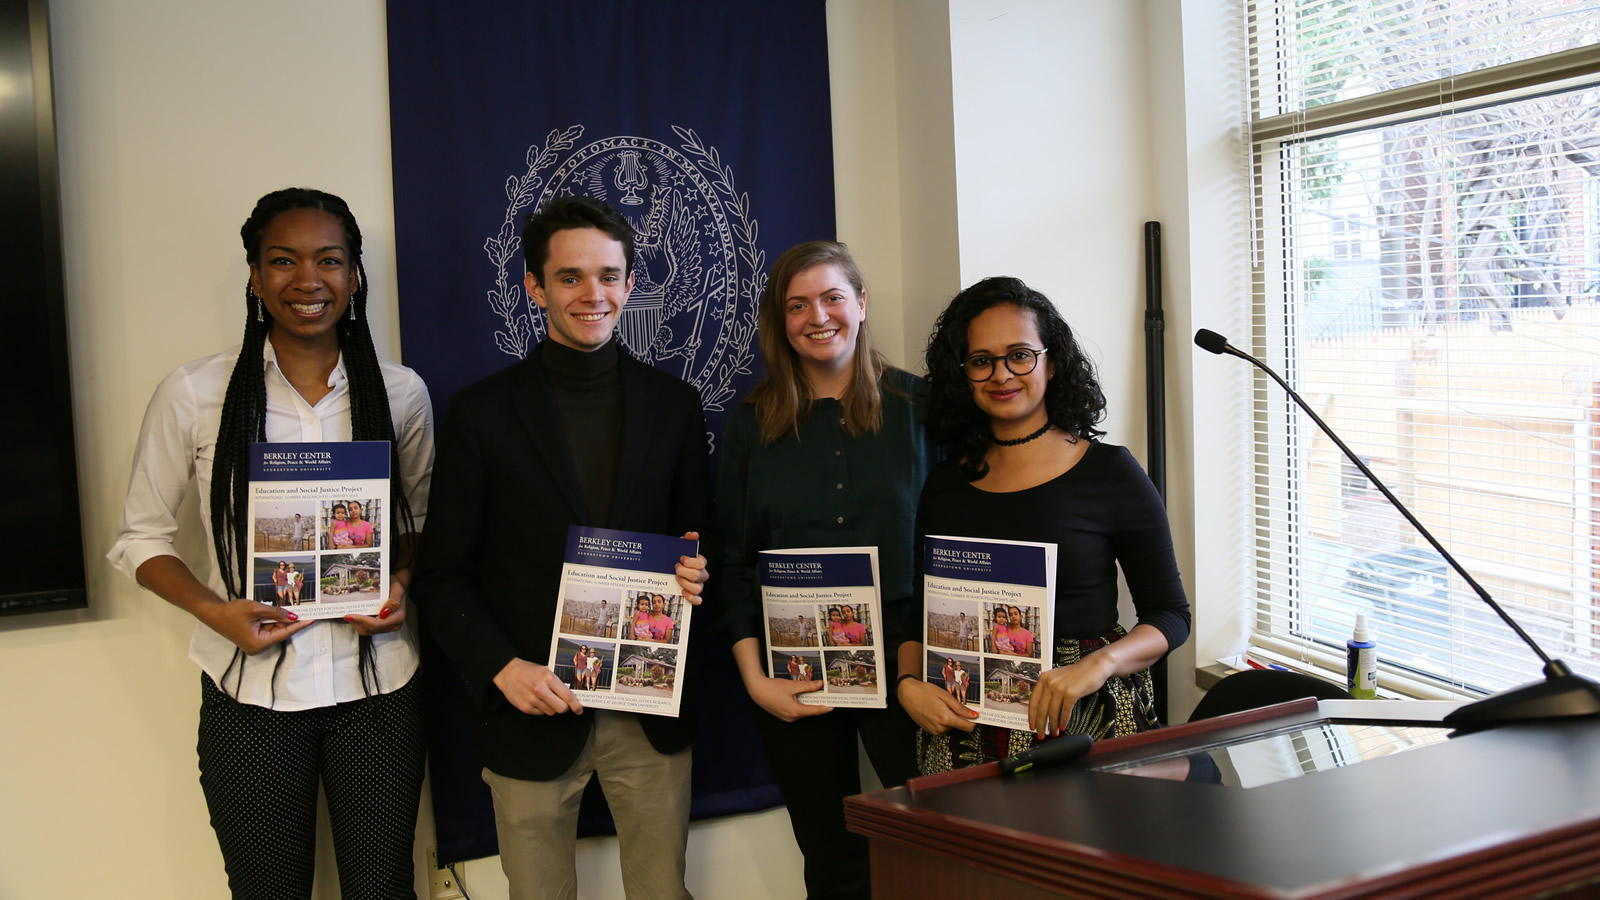 Khaliyah Legette, Jonathan Thrall, Carolyn Vilter, and Mariam Diefallah hold the report featuring their research.